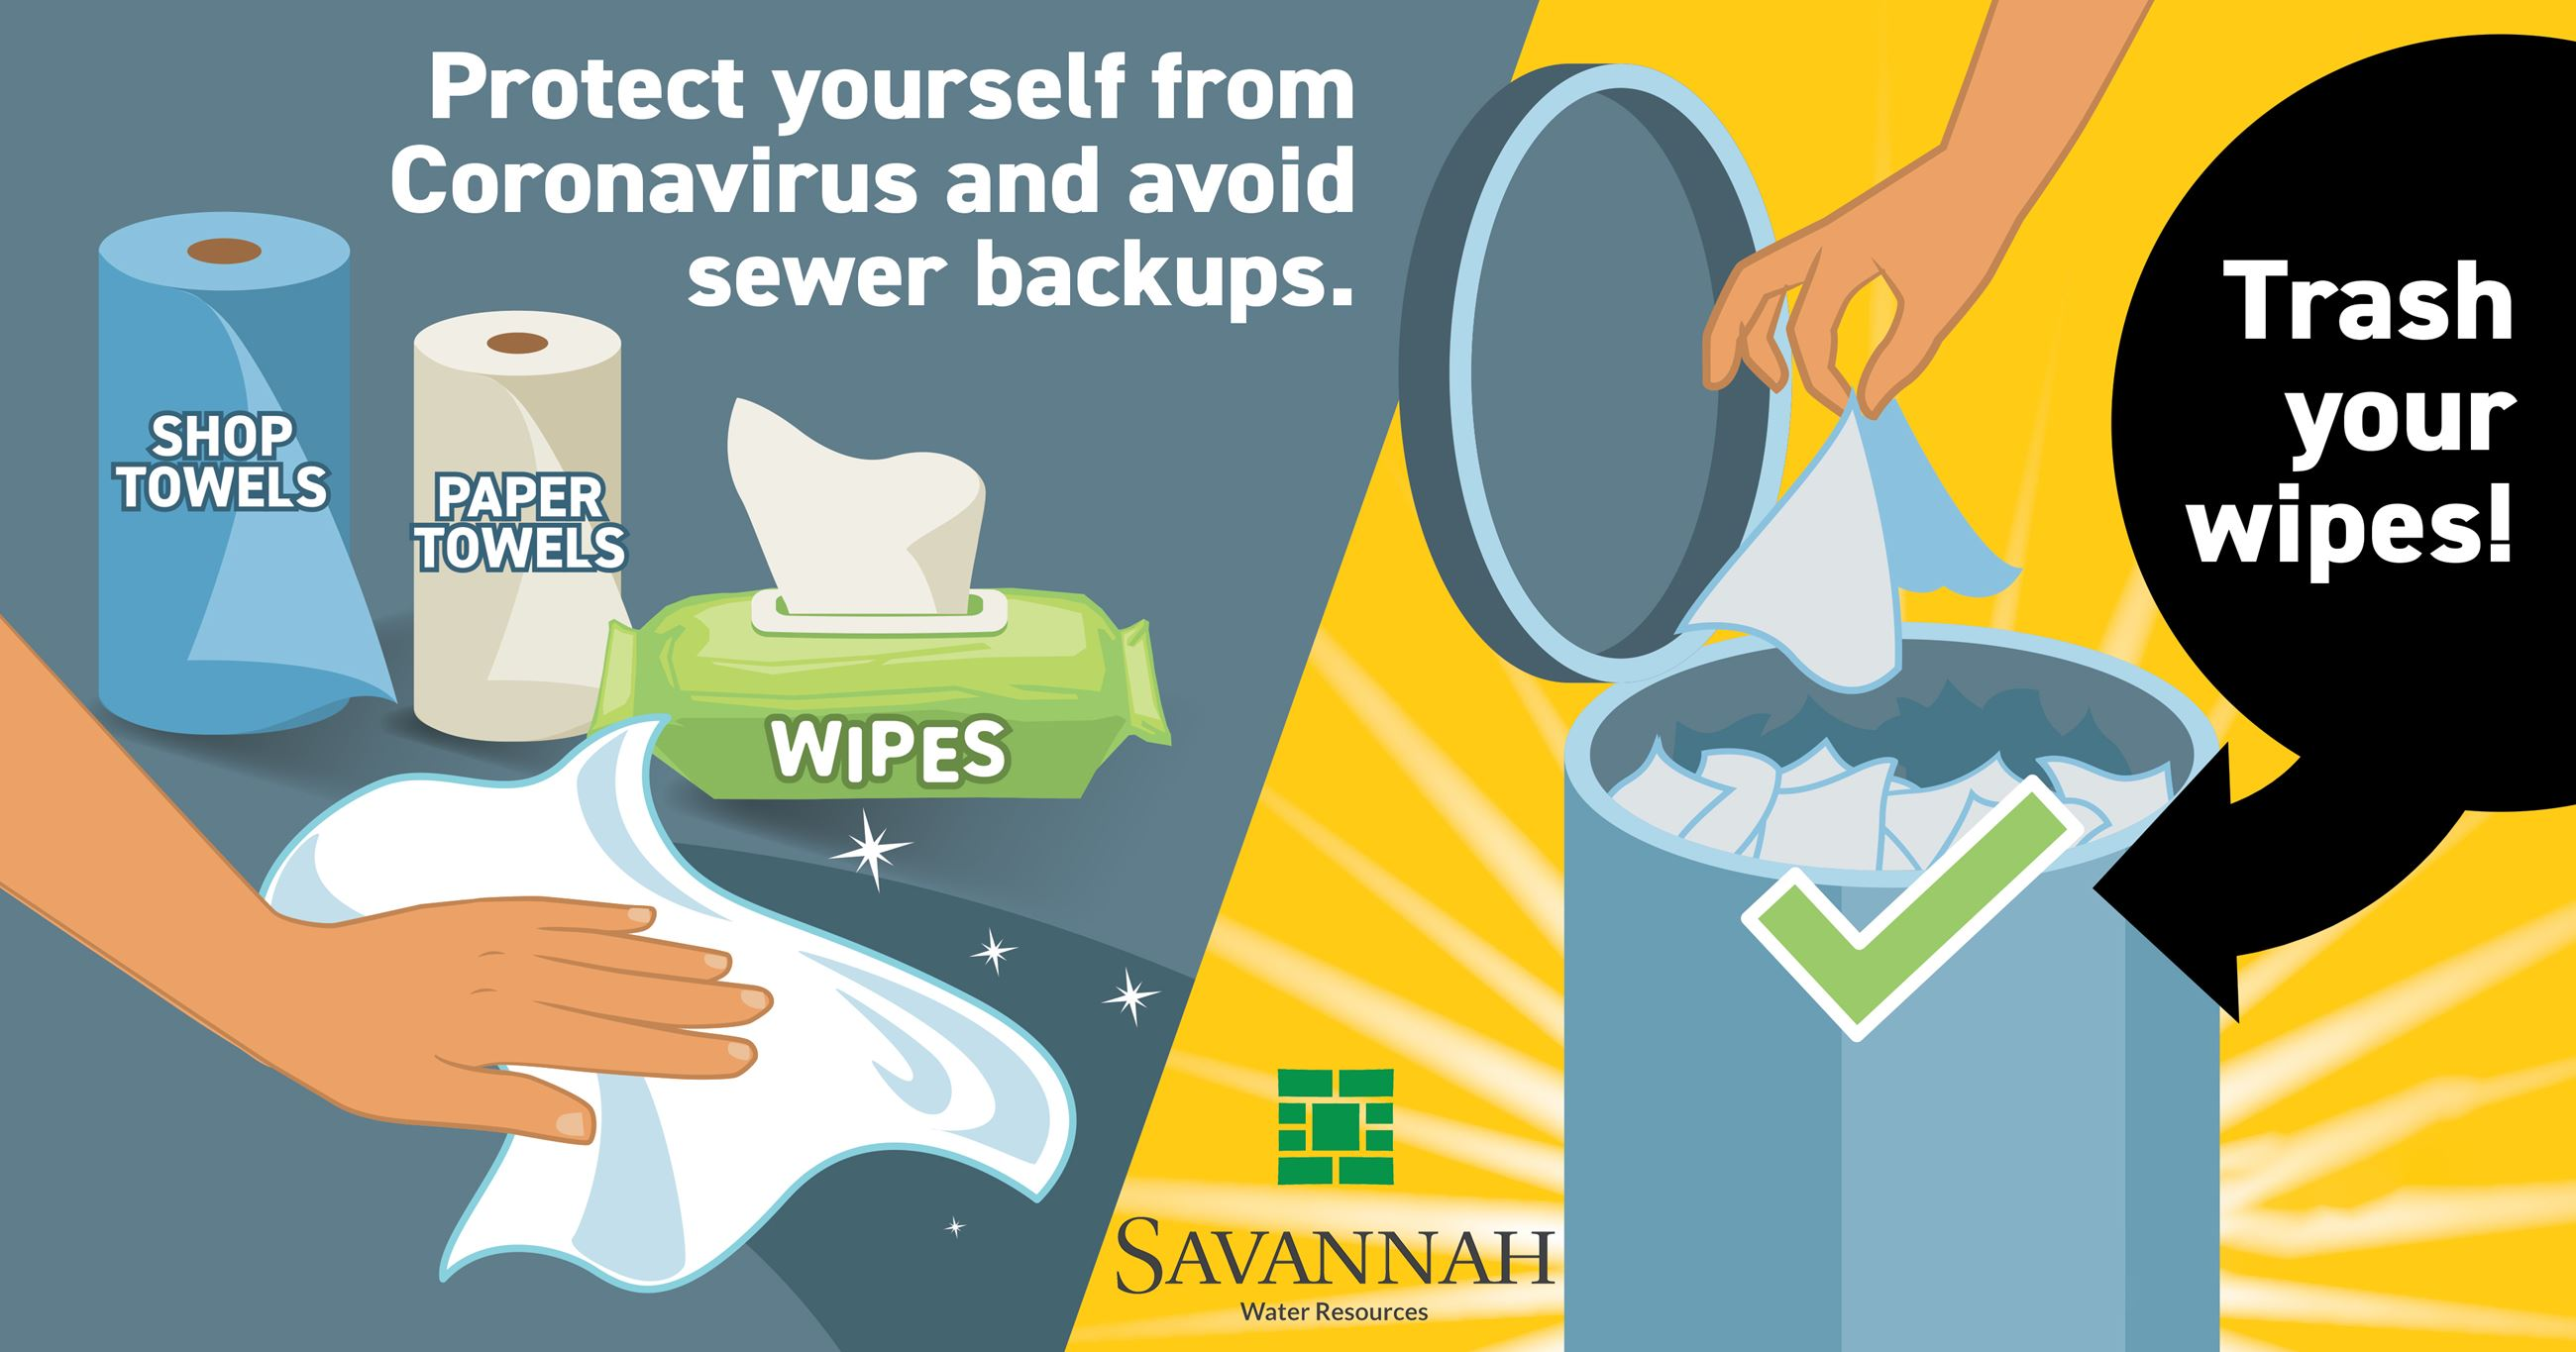 Savannah-Trash-Your-Wipes SM 3.23.2020